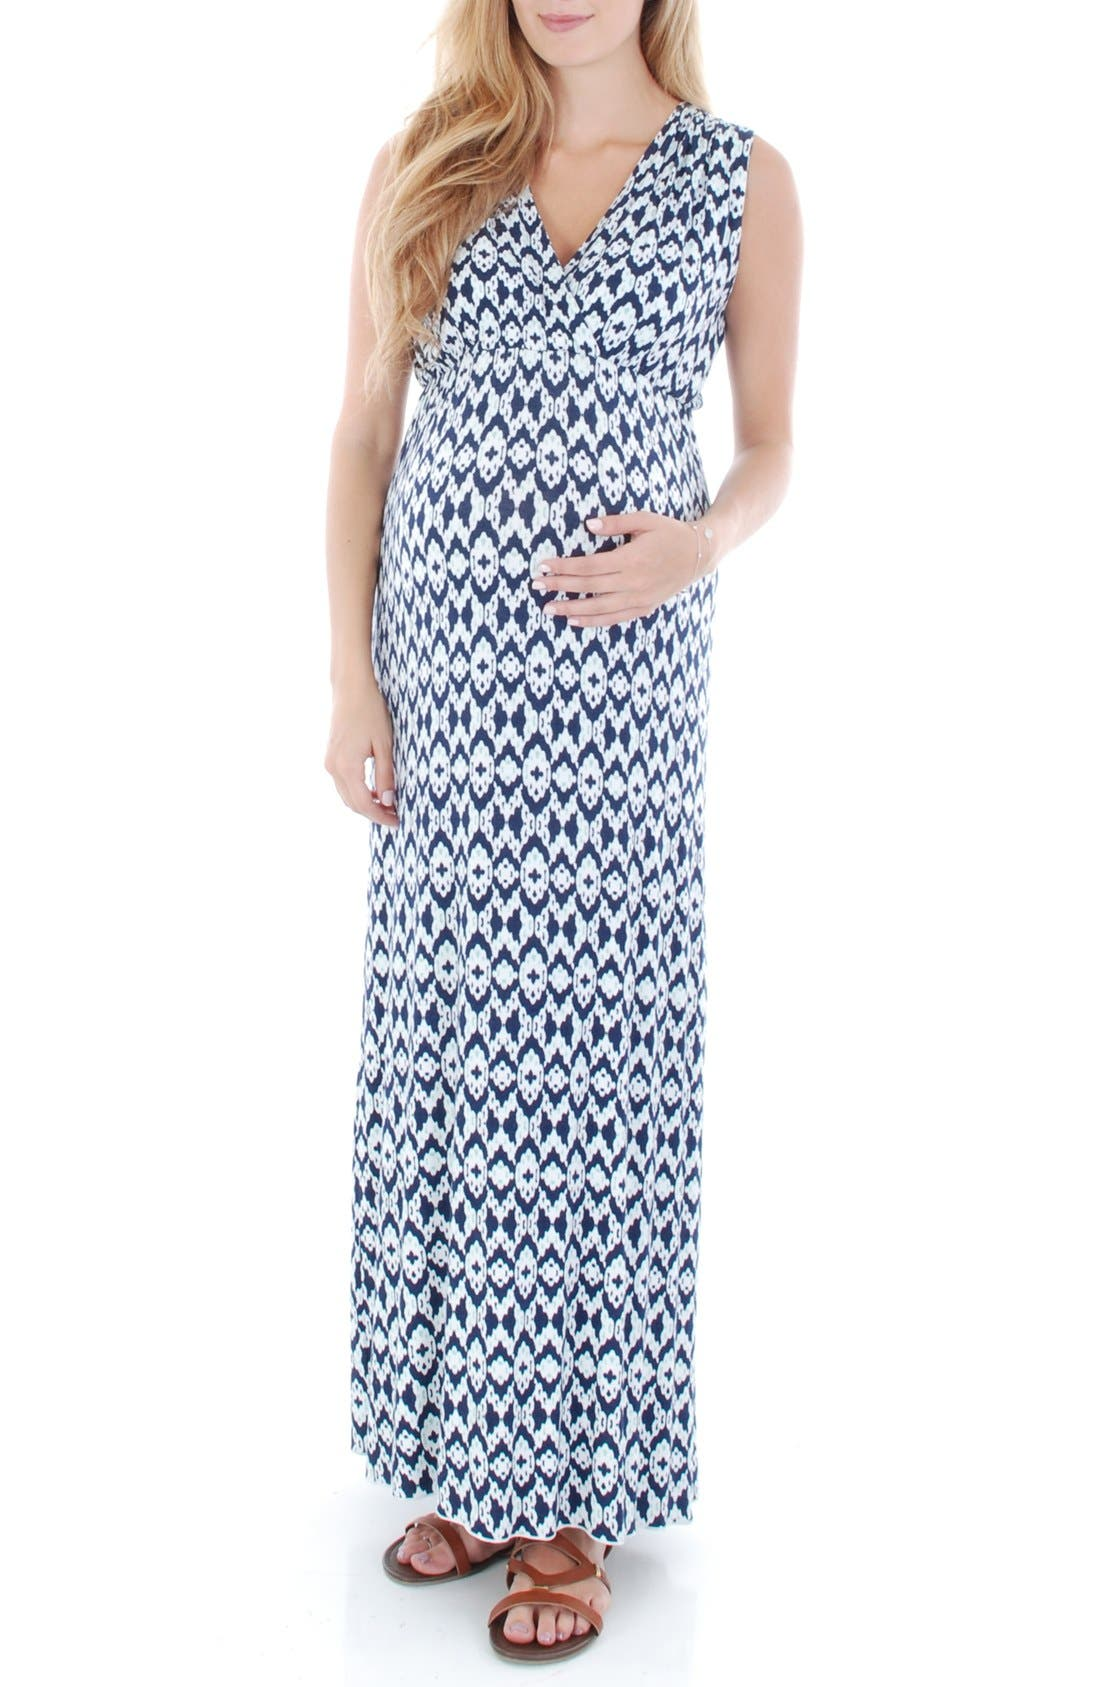 Alternate Image 1 Selected - Everly Grey 'Jill' Maternity Maxi Dress